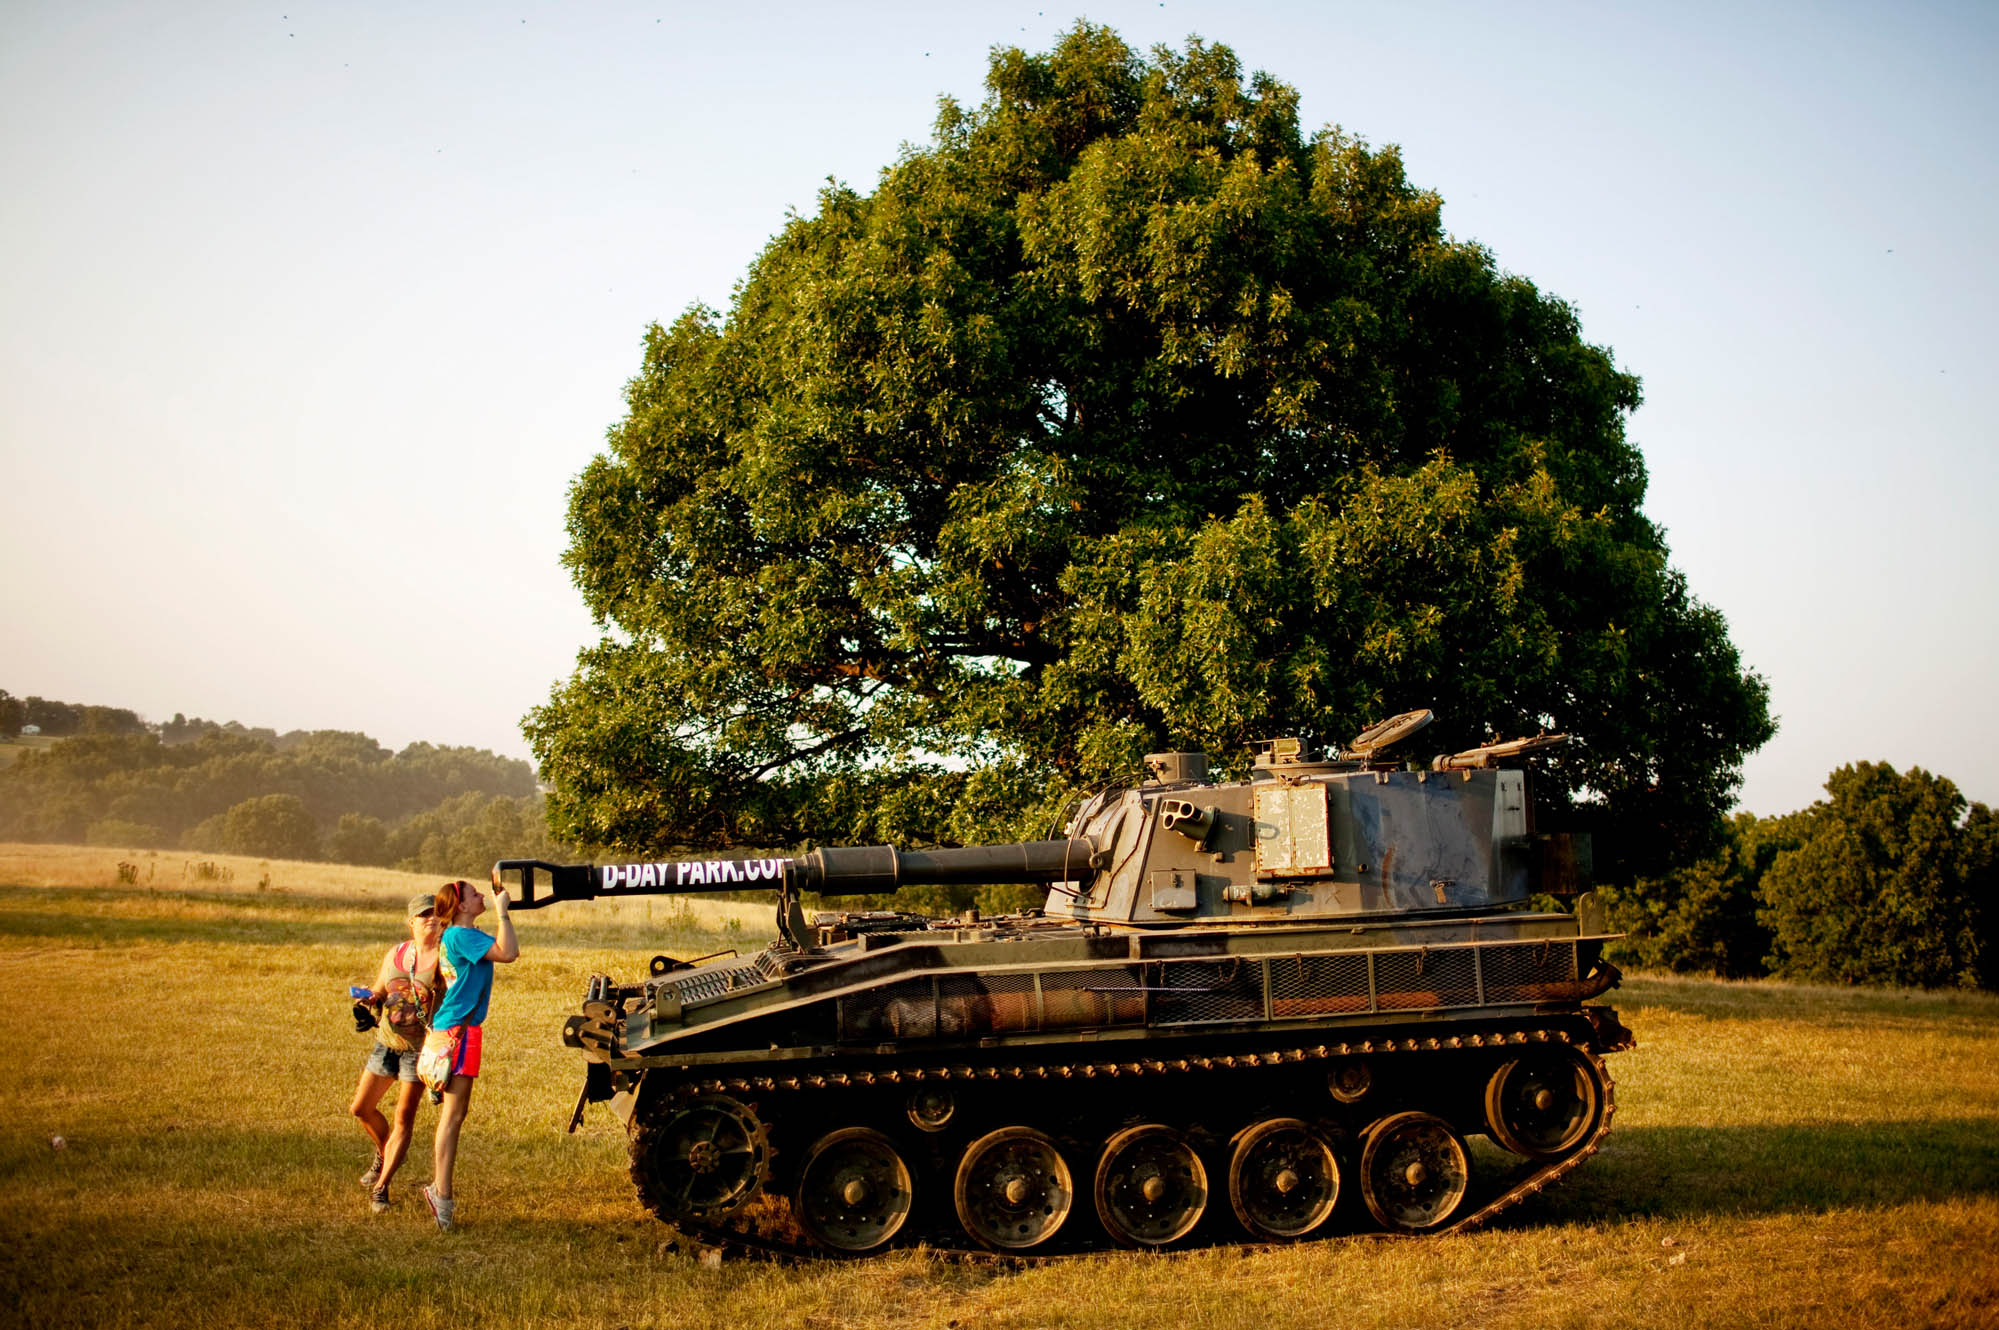 A young girl peers into the turret of a tank outside the shooting range. In addition to the tank, organizers brought an armored personnel carrier, a half-track troop carrier and a military helicopter. All were operational and available for rides to the tune of 70 dollars per person.